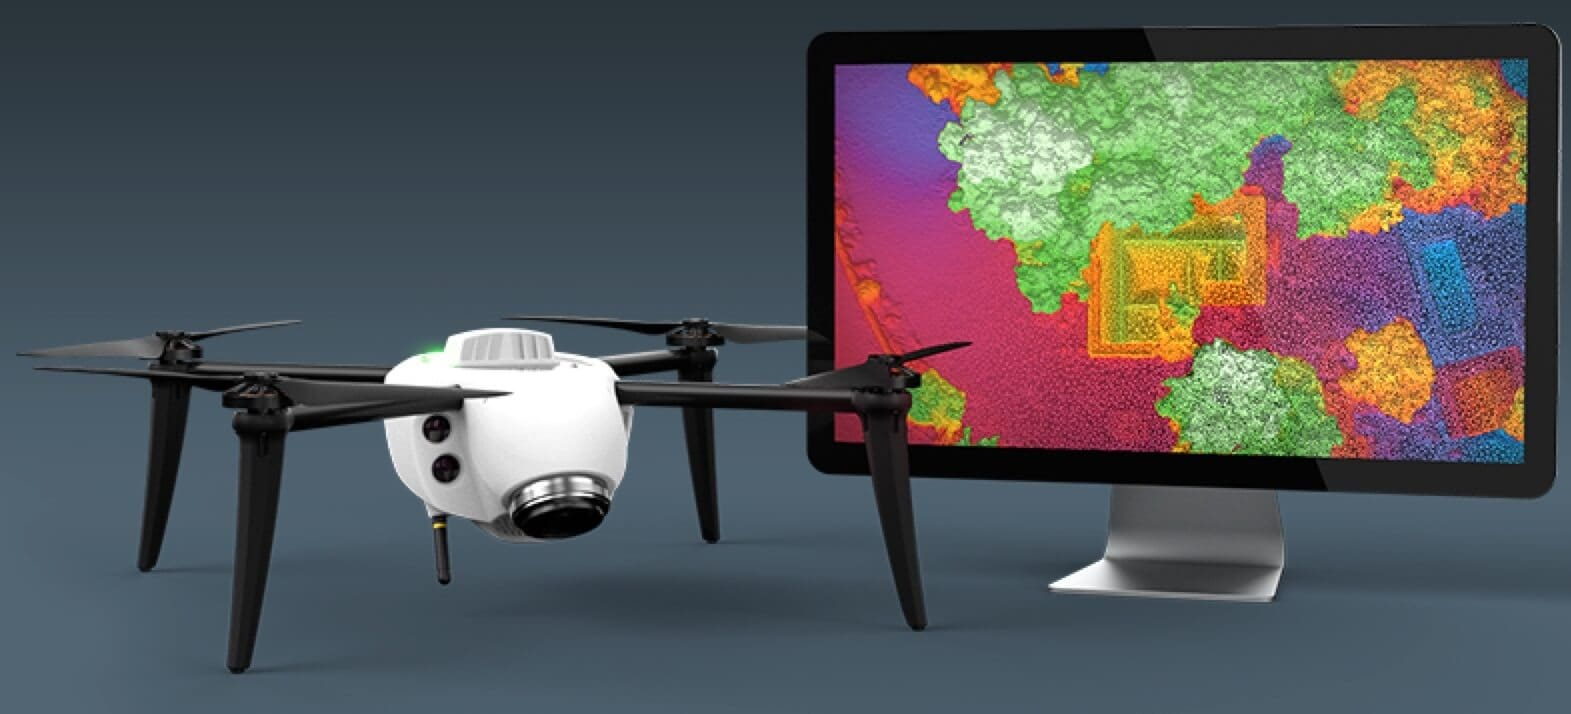 Kespry Drone Platform Gives Midwest Roofing Company Game